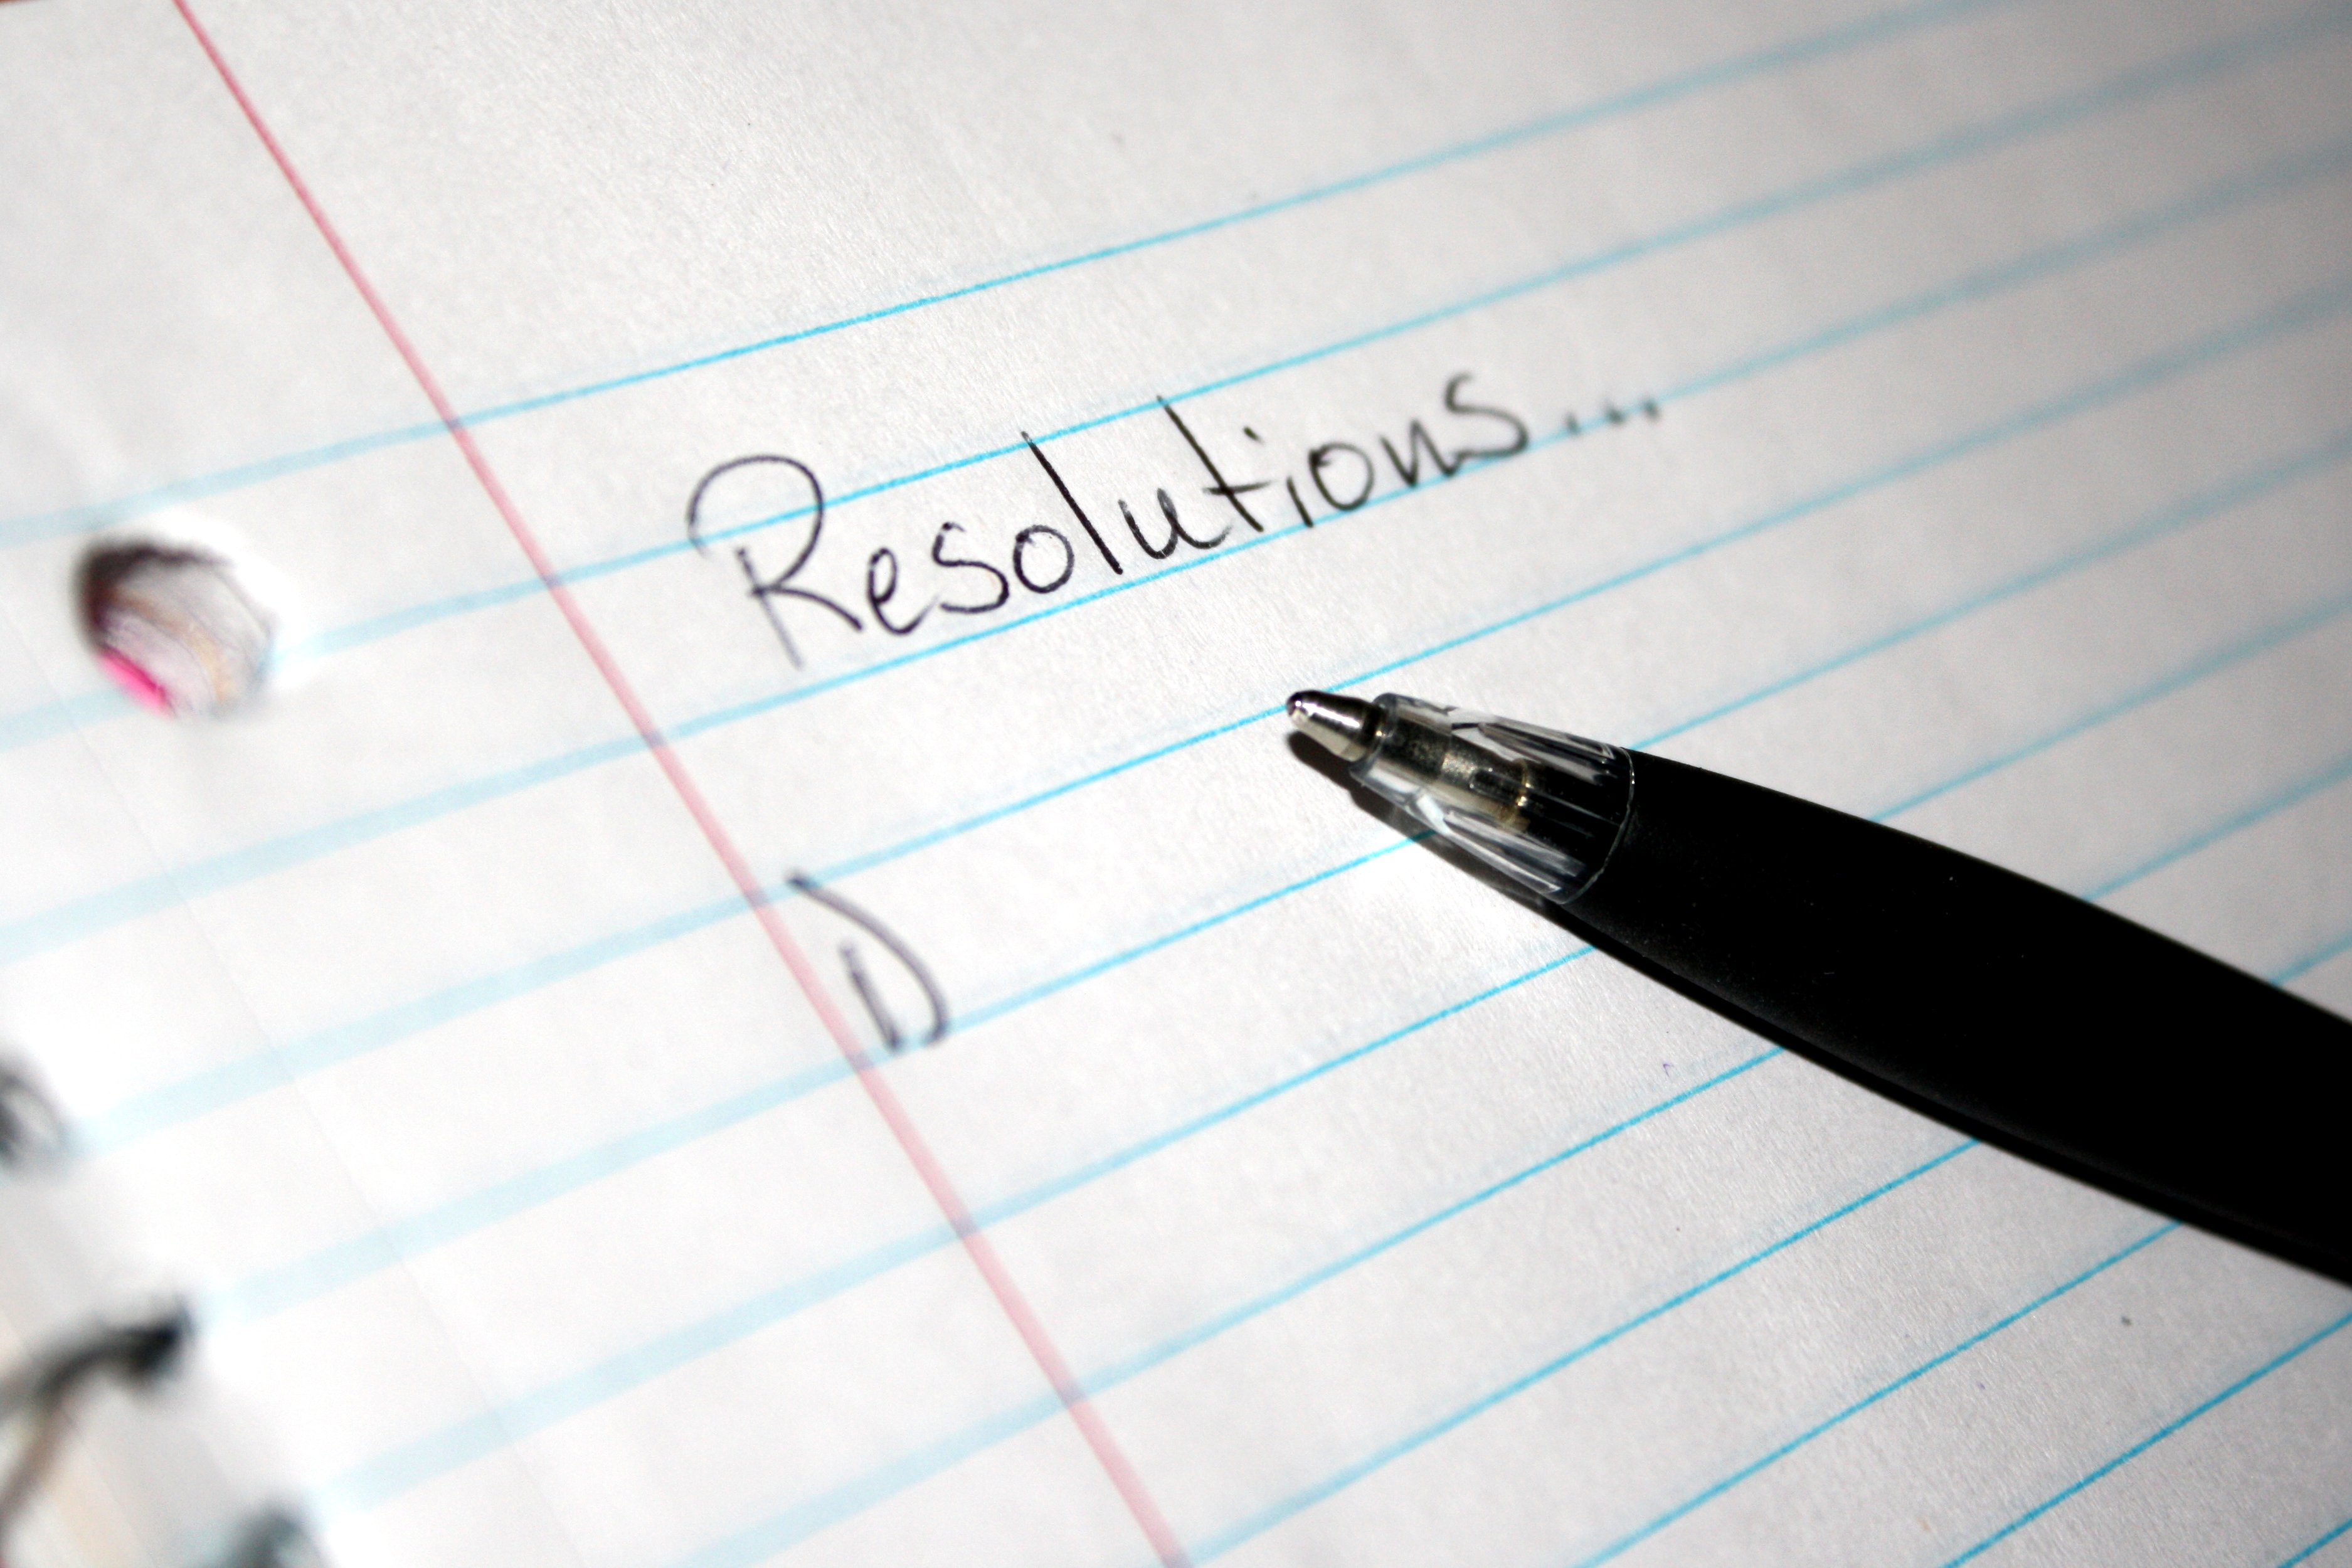 We don't need no stinking resolutions